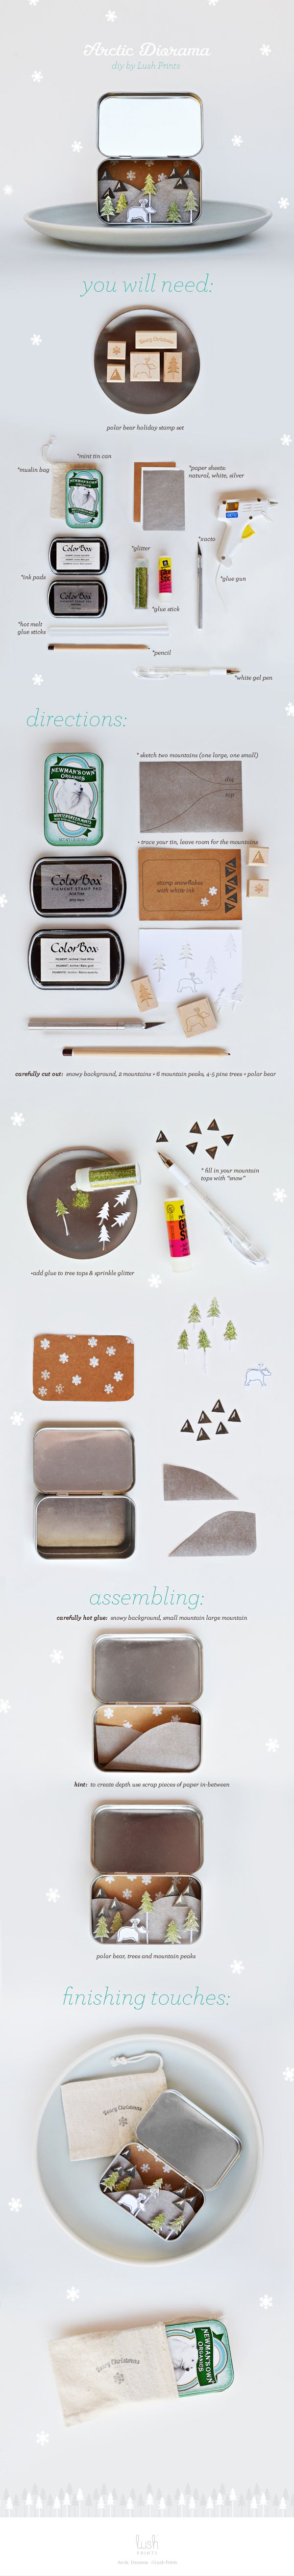 Arctic Diorama DIY Tutorial using Polar Bear Holiday Stamp Set from Lush Prints